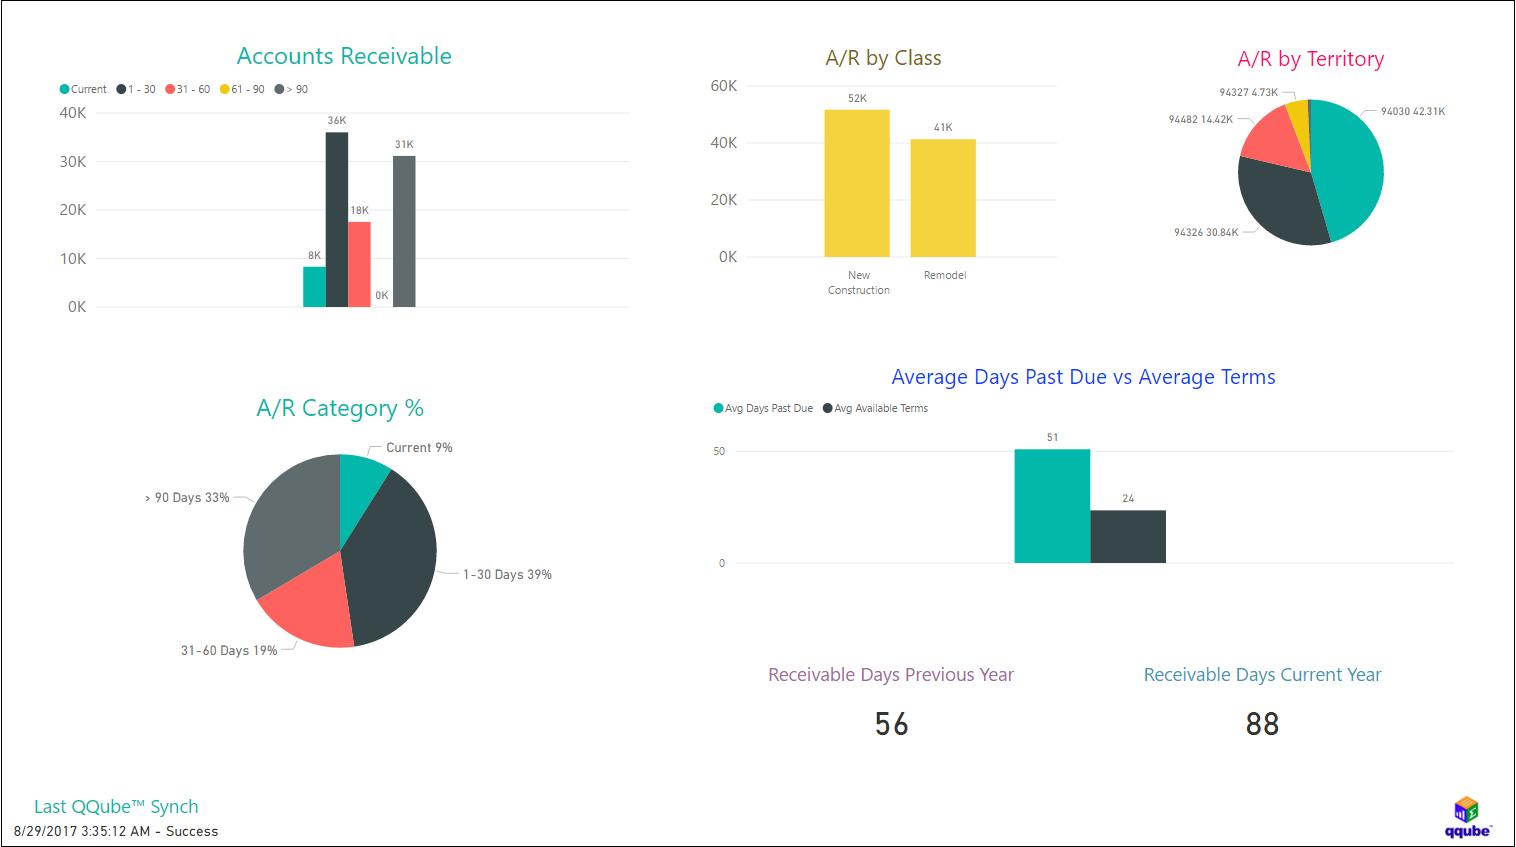 QQube and Power BI - Accounts Receivable